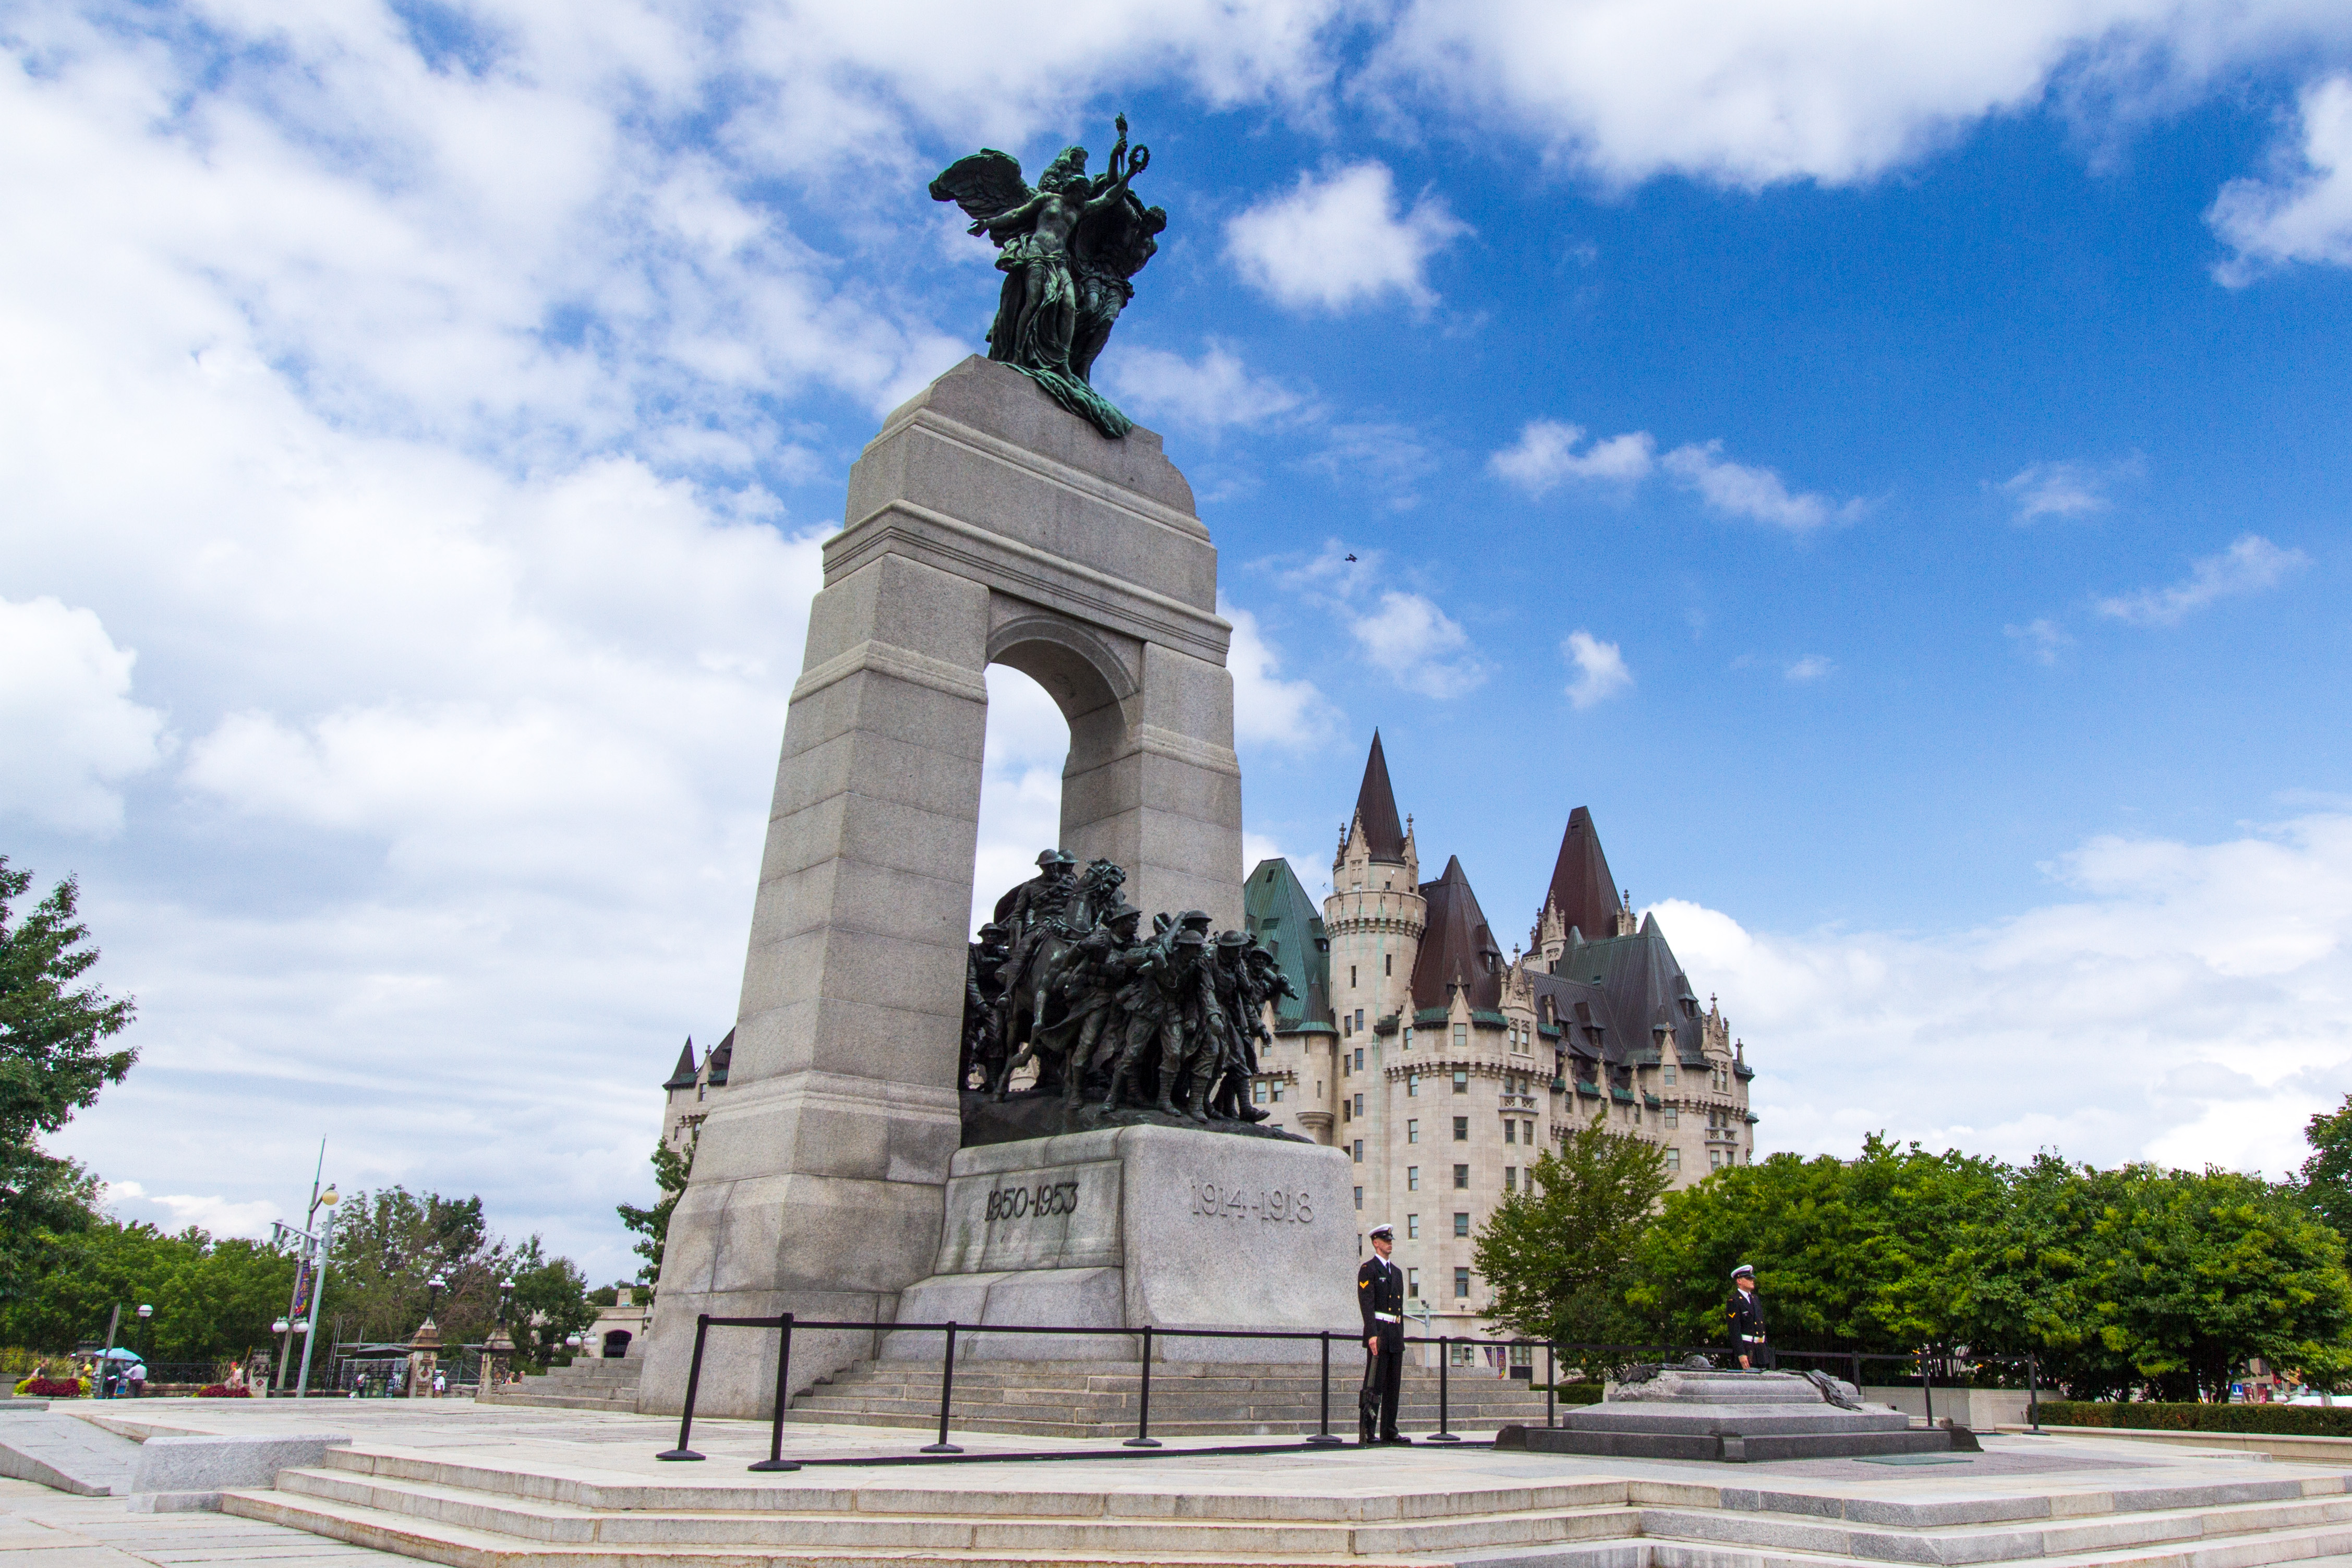 Concrete in Ottawa being used for creative monuments.